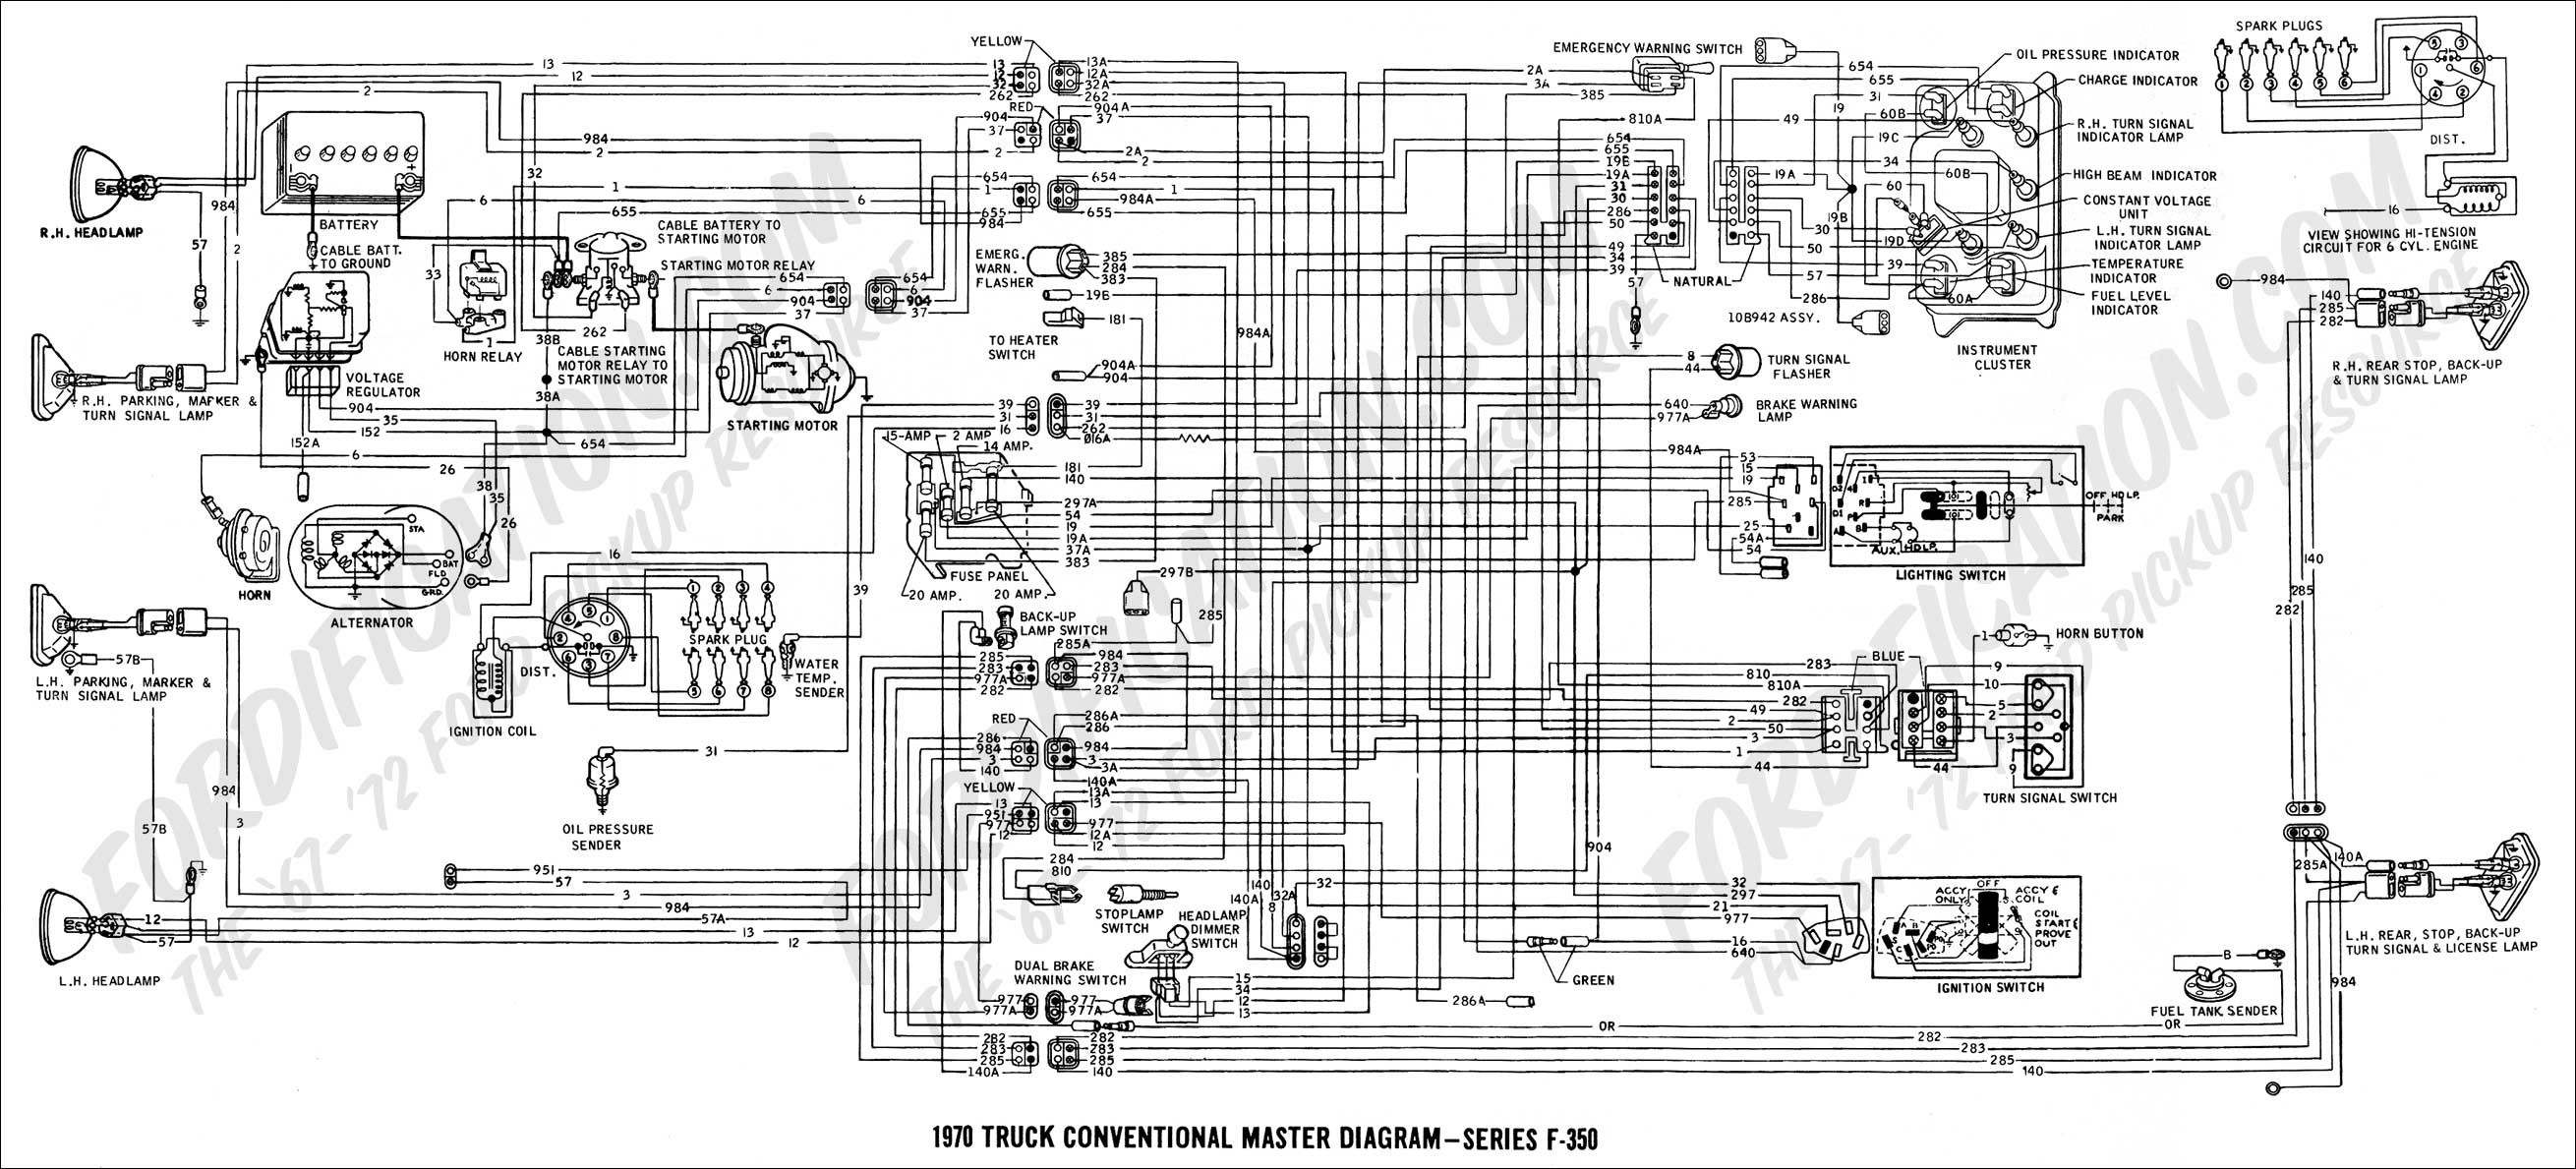 WRG-2891] Freightliner M2 Amu Wiring Diagram on